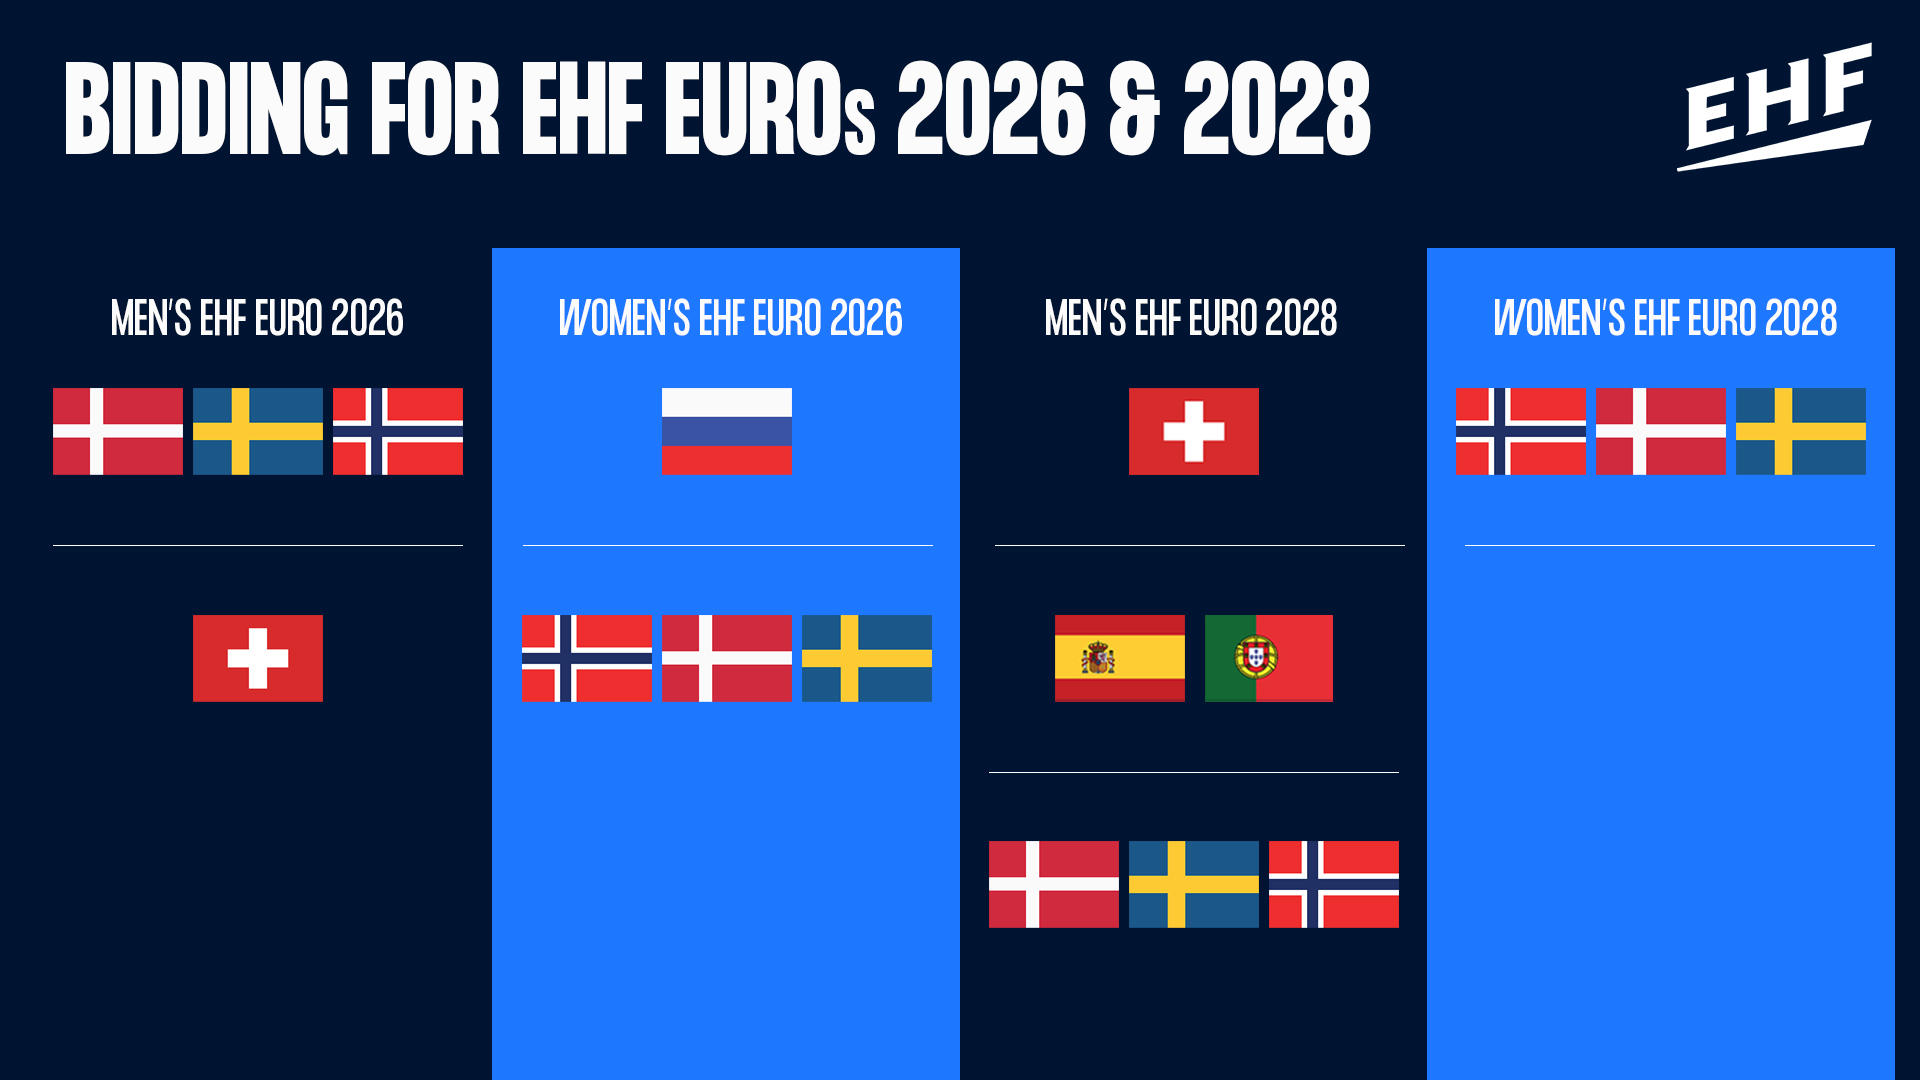 The EHF have confirmed the bidders for their upcoming European Championships ©EHF